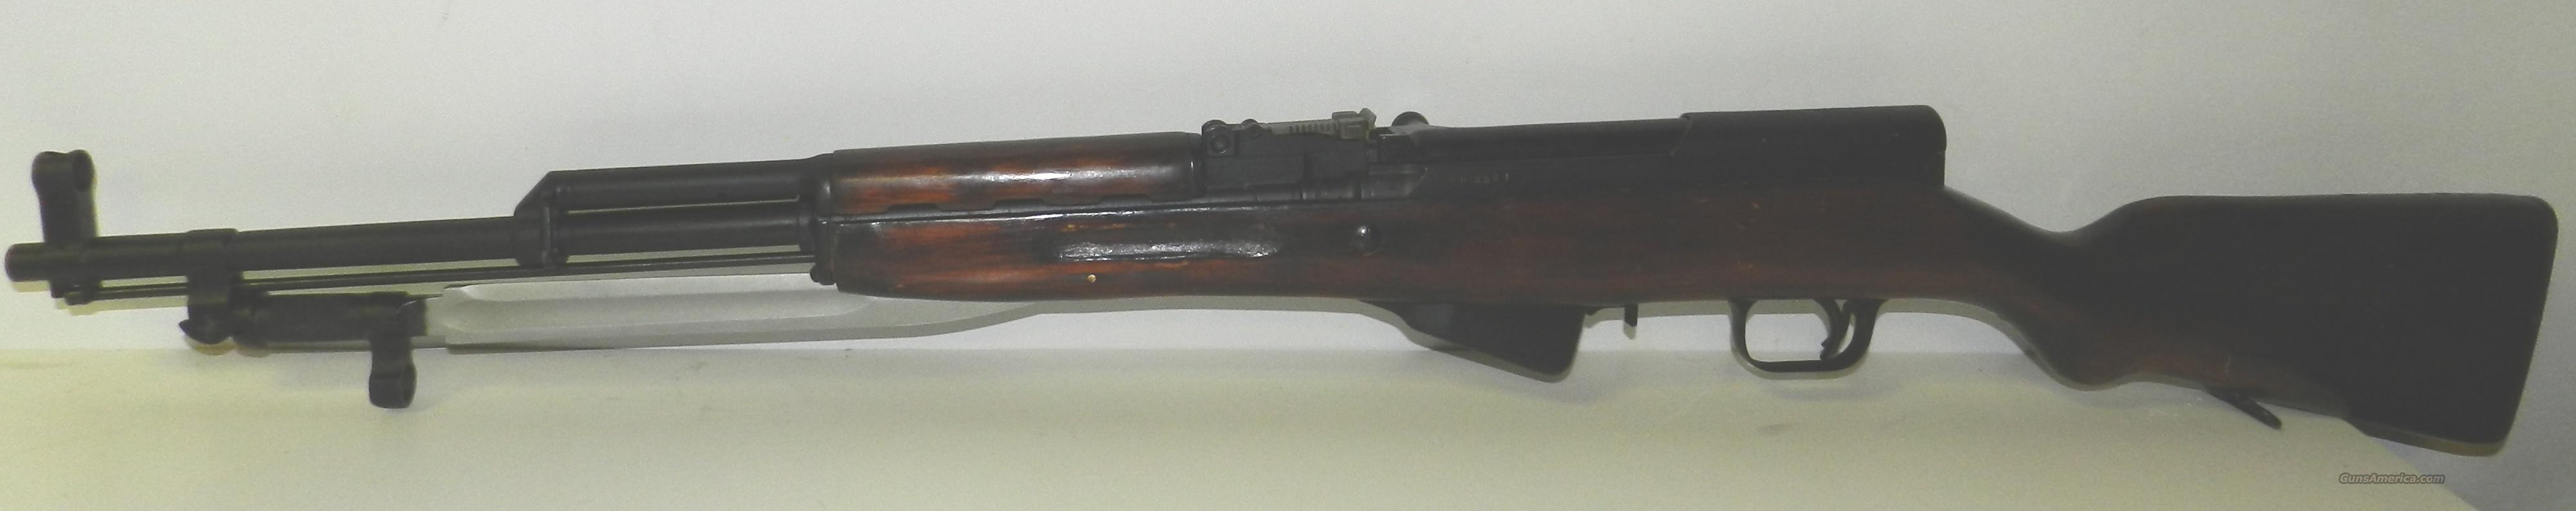 1951 Russian SKS CDI 7.62x39 with bayonet  Guns > Rifles > SKS Rifles